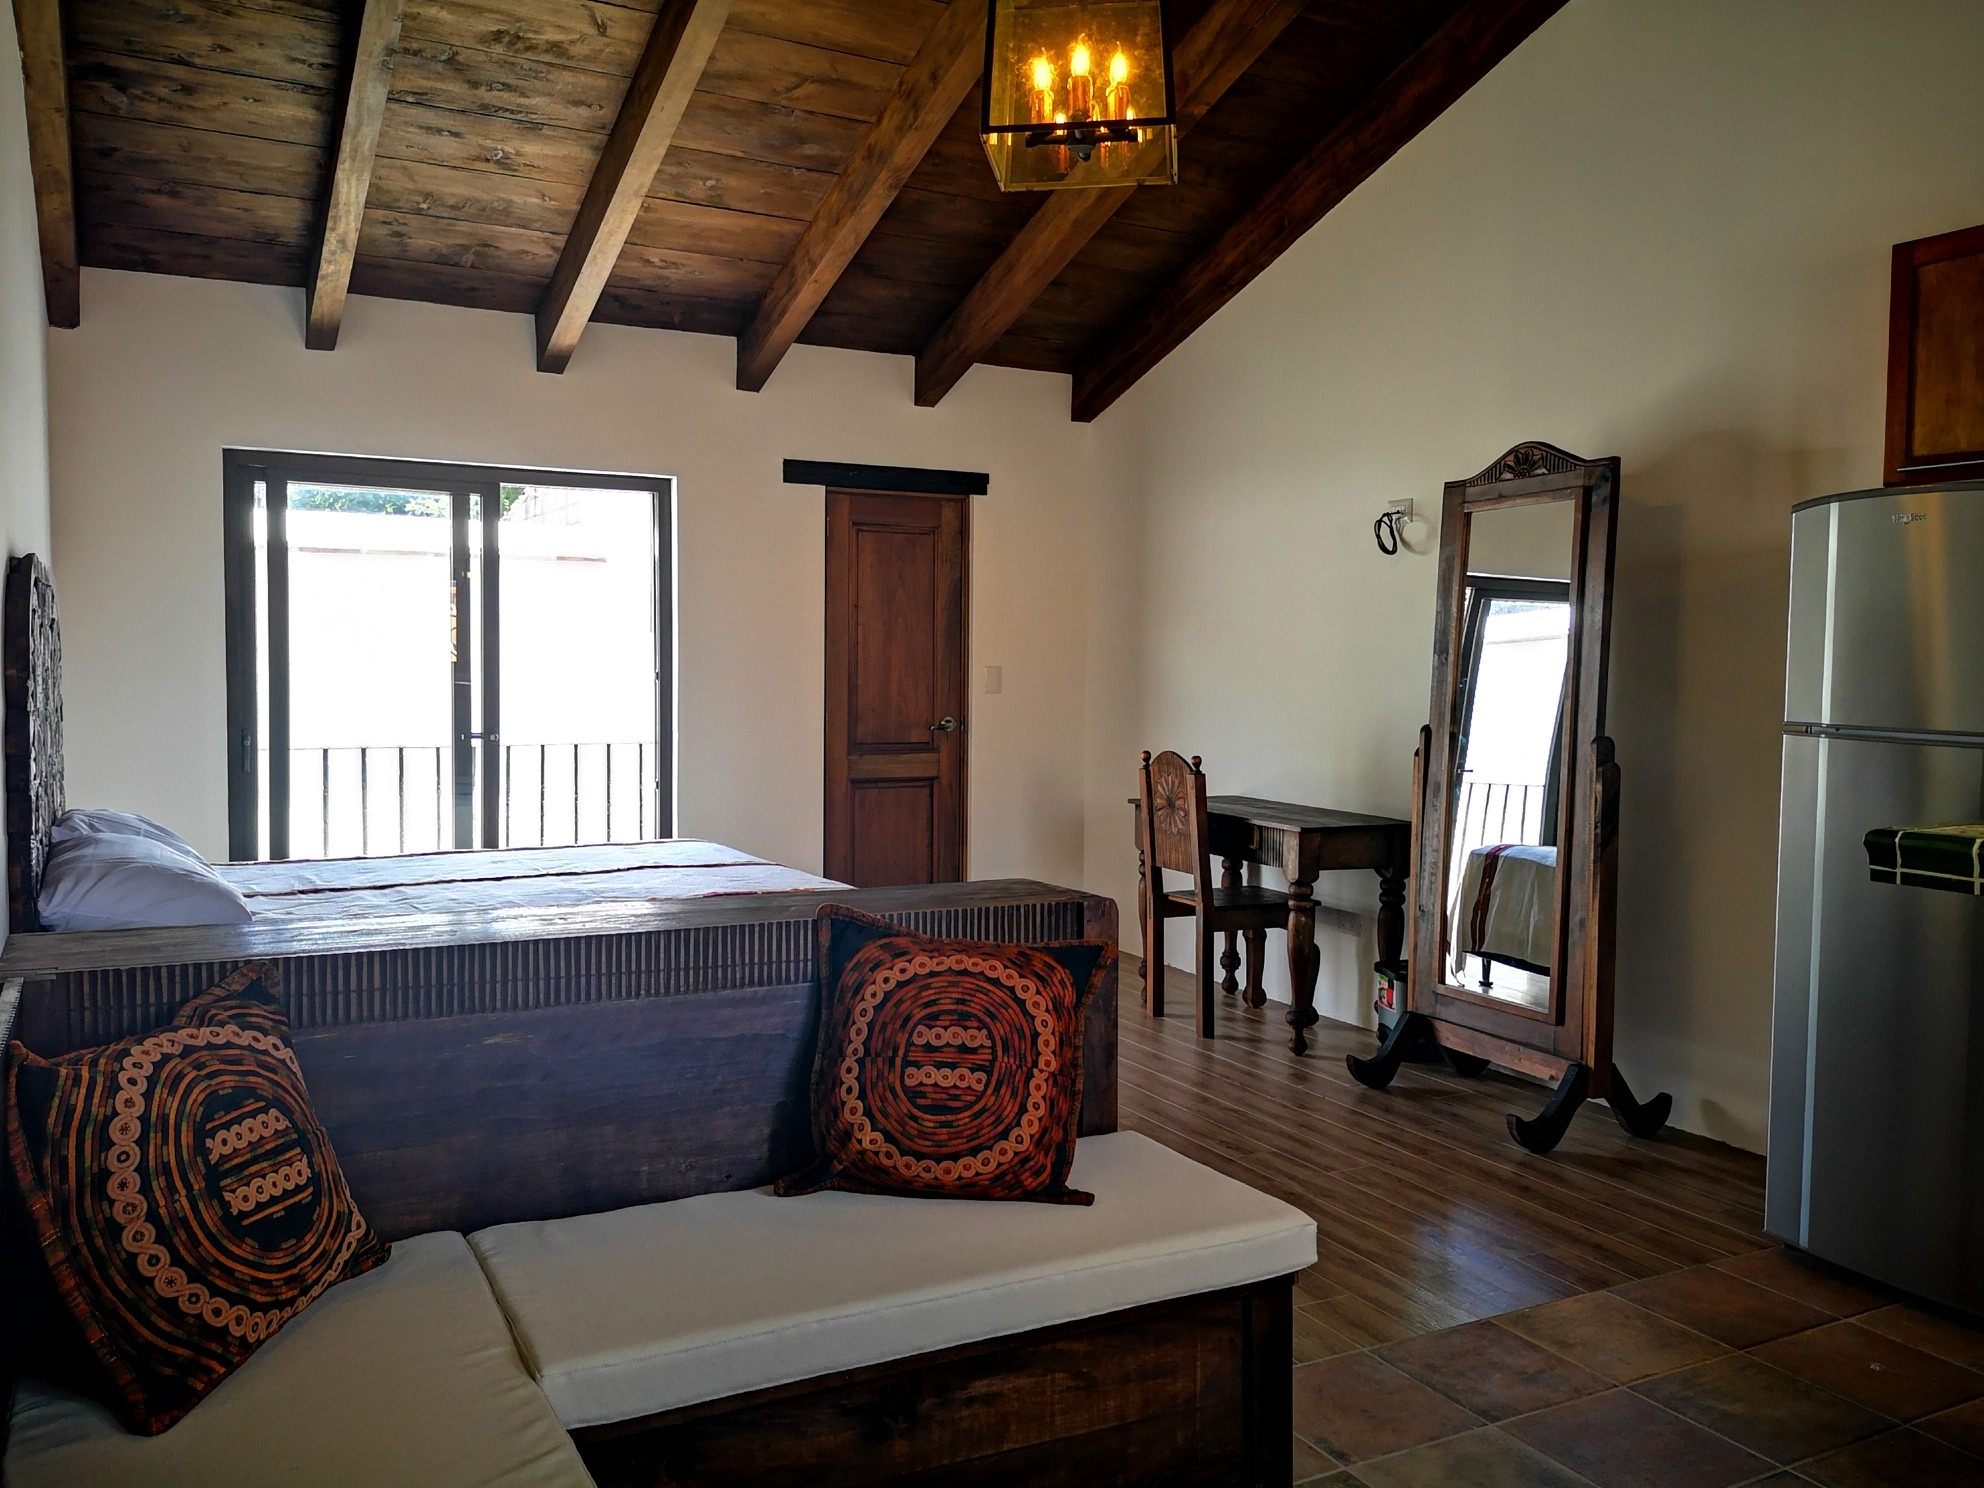 4972 NICE APARTAMENT FOR RENT DOWNTOWN OF ANTIGUA GUATEMALA